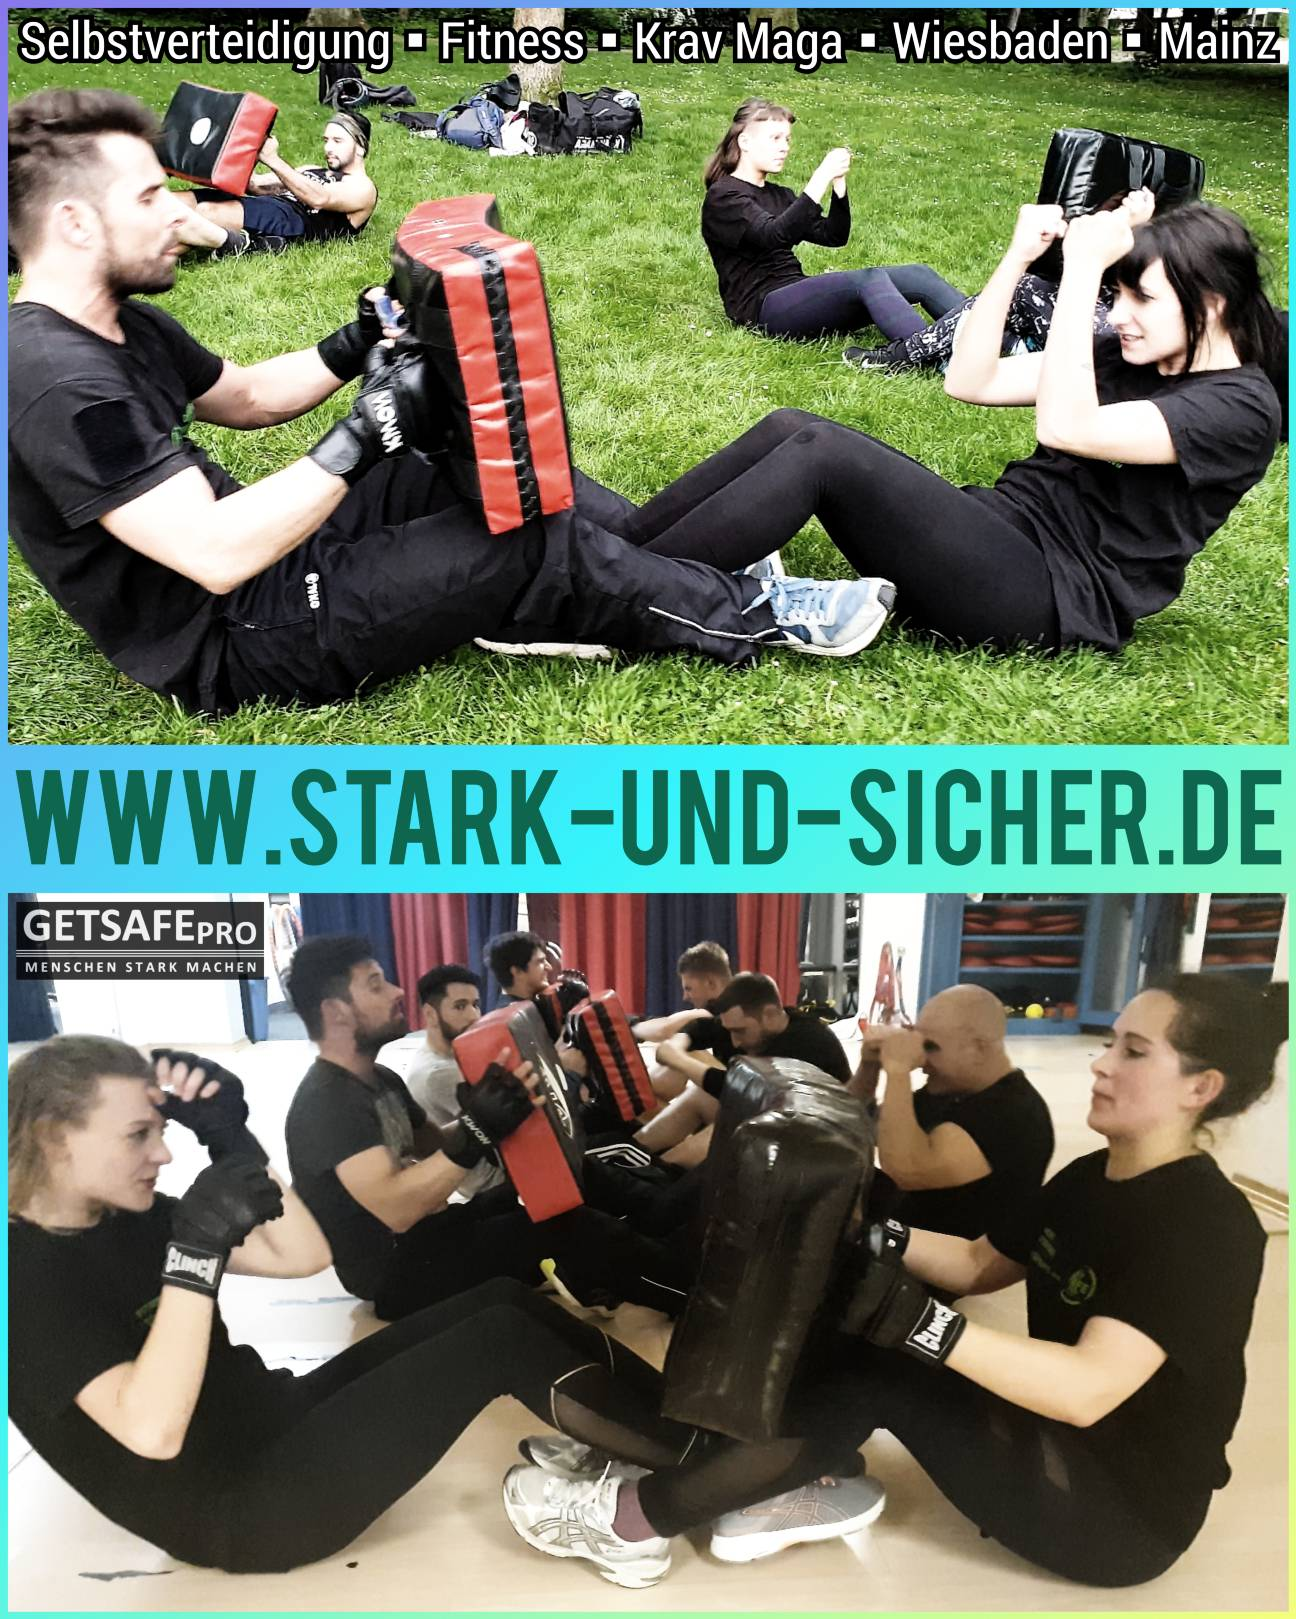 GETSAFEpro Krav Maga Outdoor Traininig Selbstverteidigung Fitness (2)